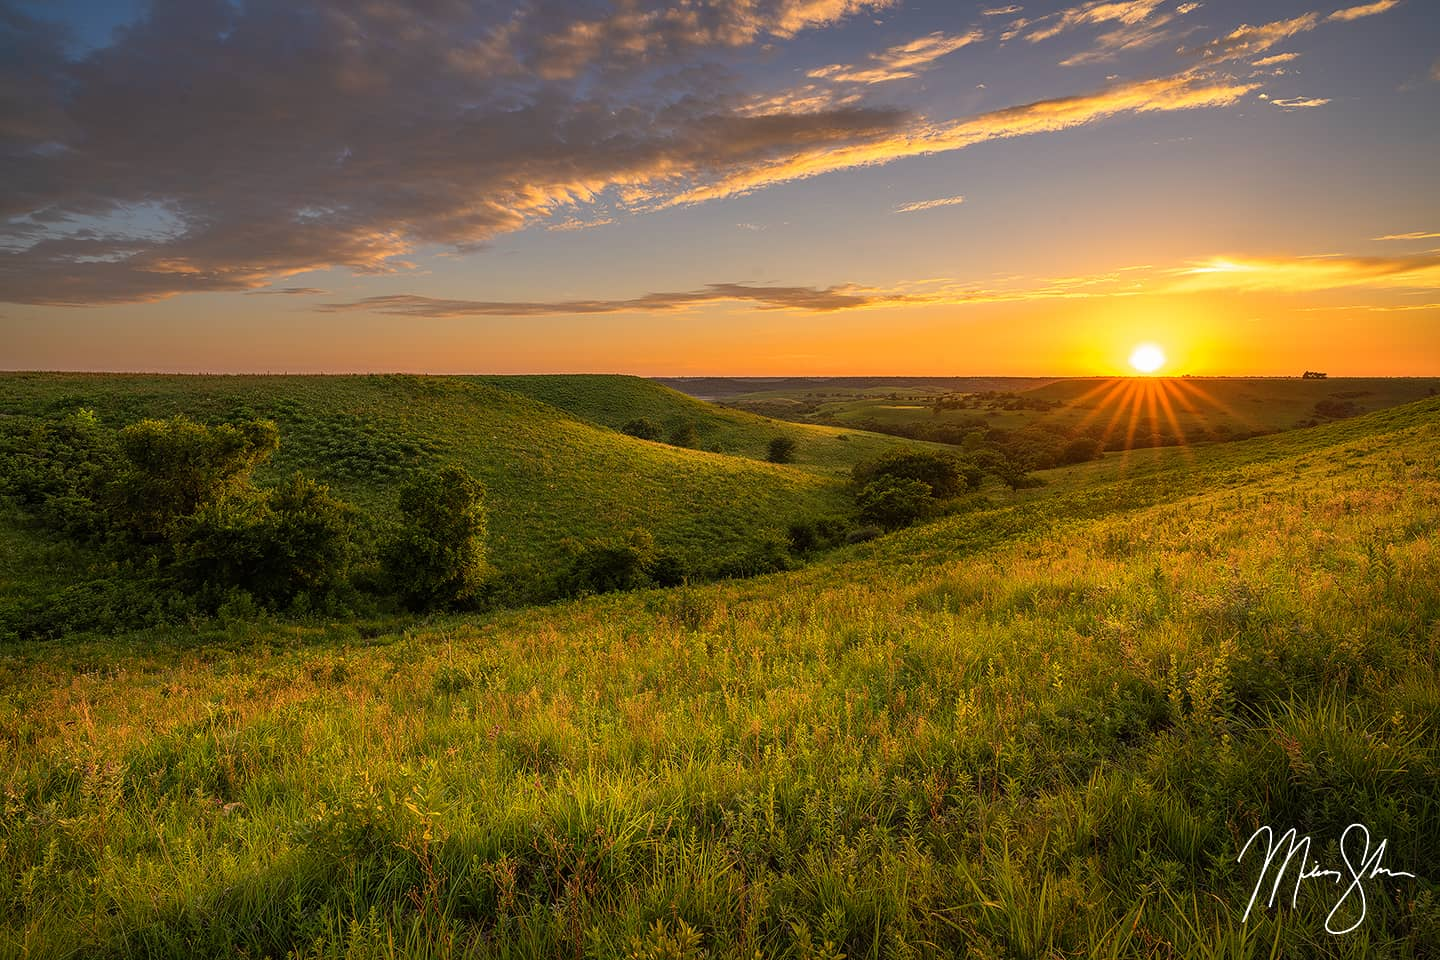 Golden Light in the Flint Hills - Near Manhattan, Kansas